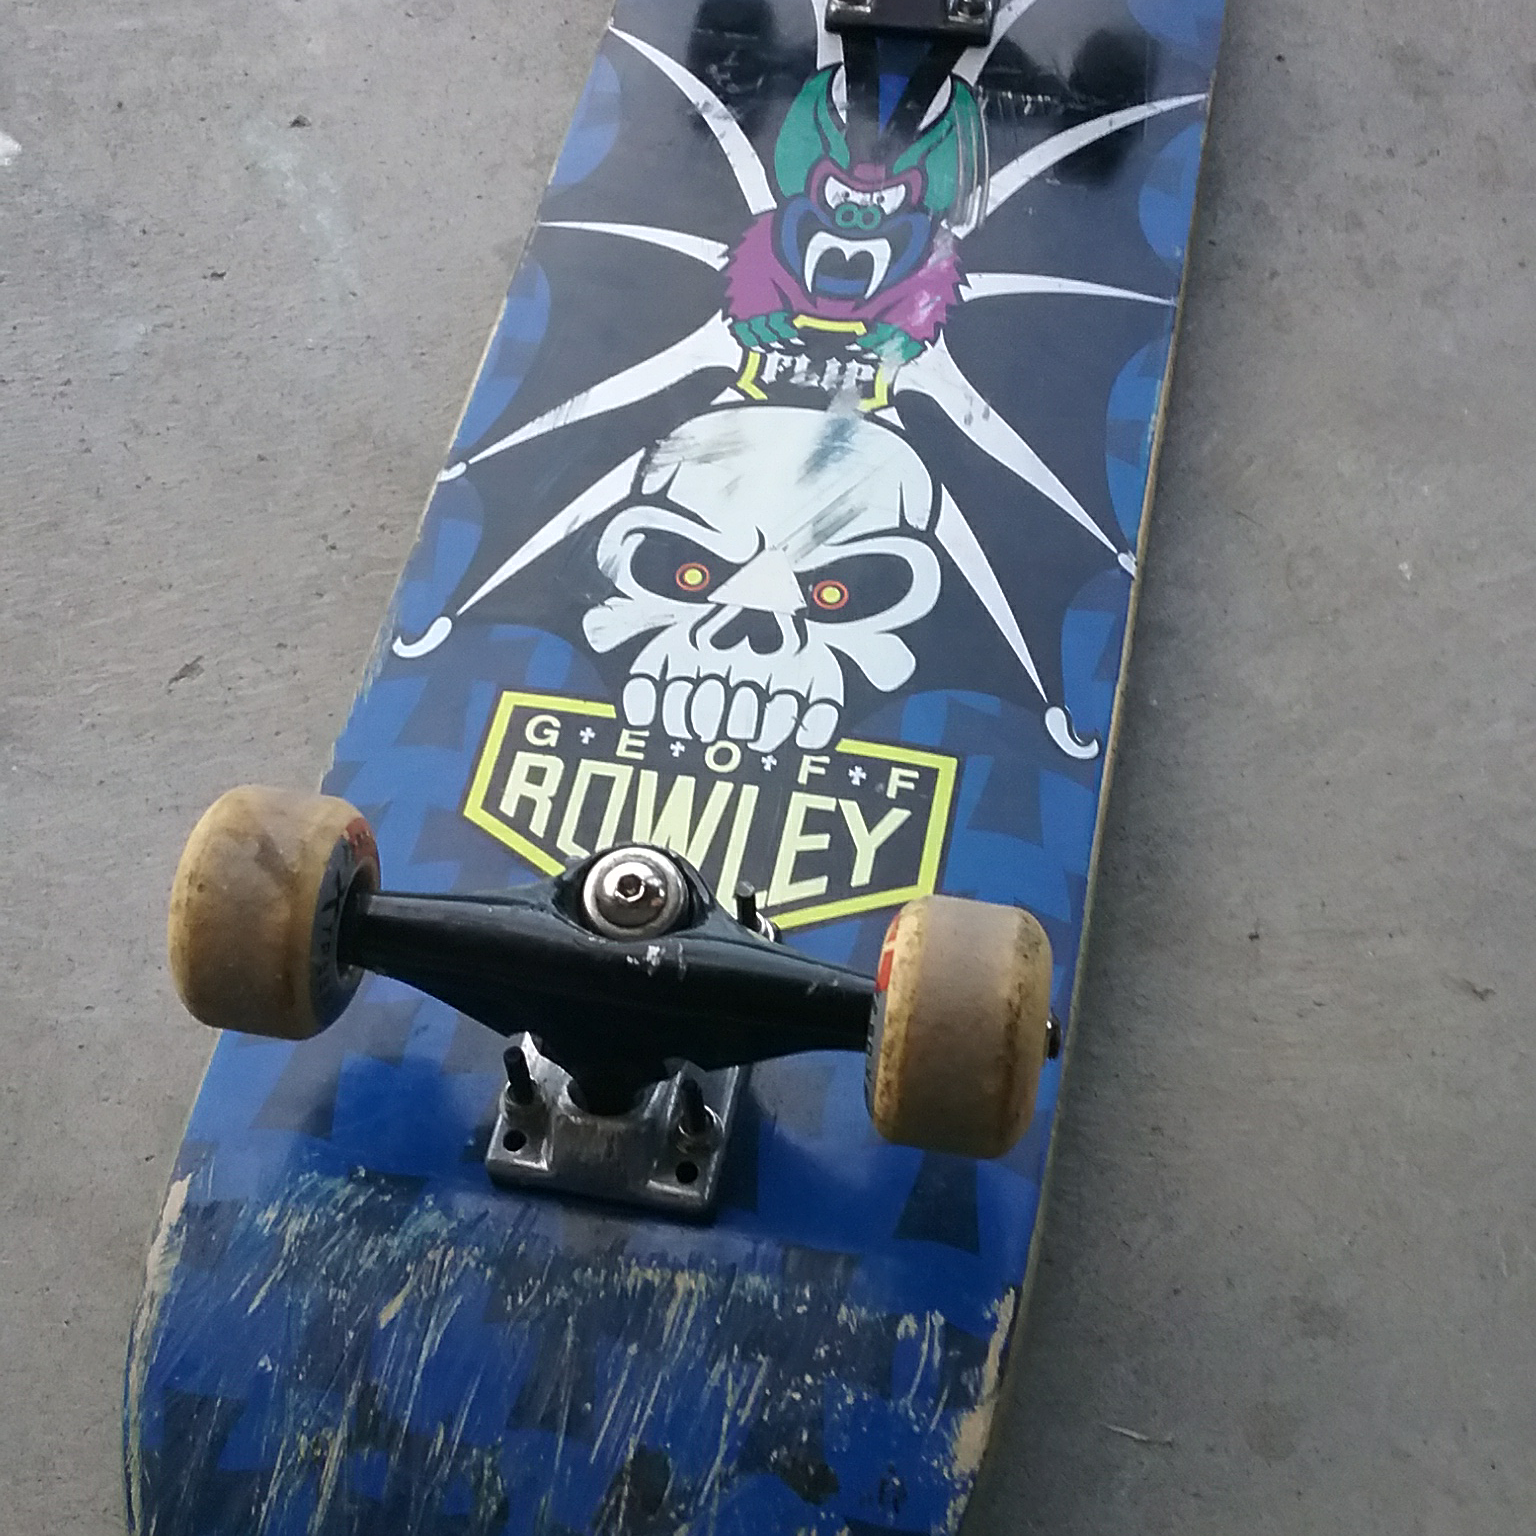 1337b04f7ffb When I try my pop shove-it s I can t get my back foot on the board. I skate  regular. Please help. – Pop Shove-it